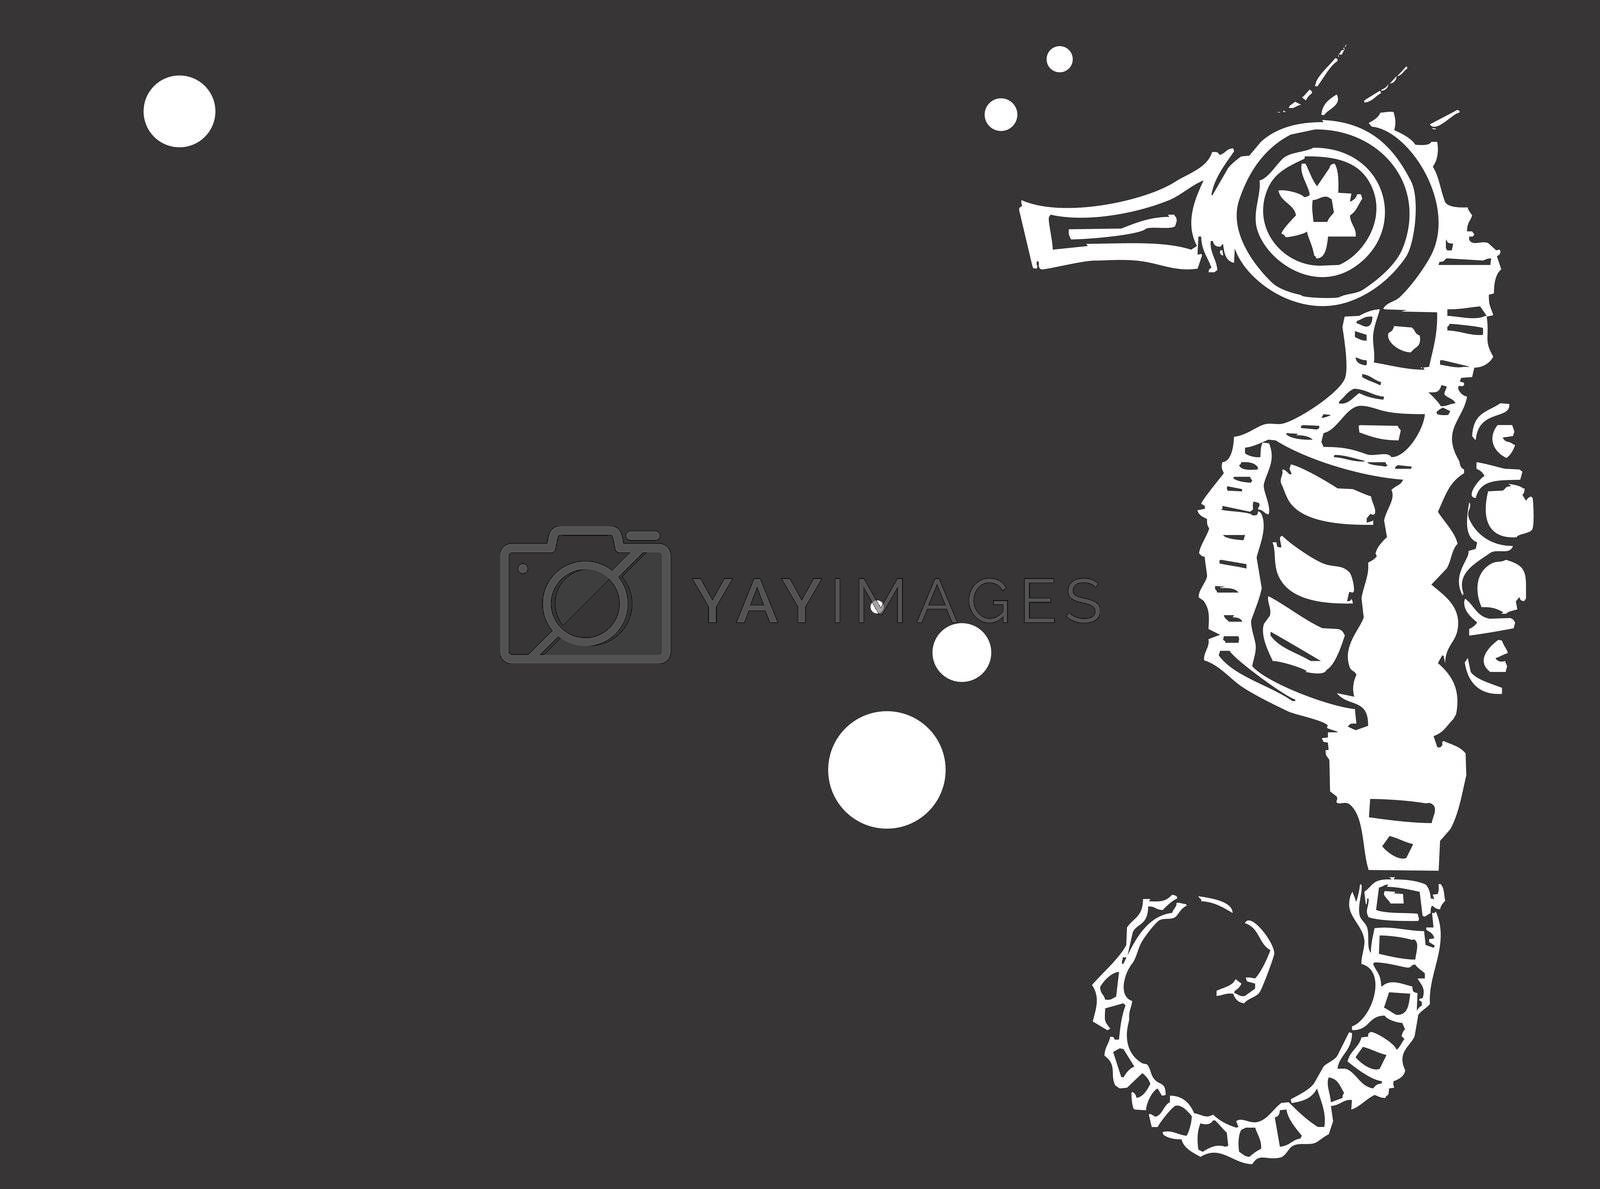 Single seahorse taken from one of my scratch board images and placed against a black background with bubbles.